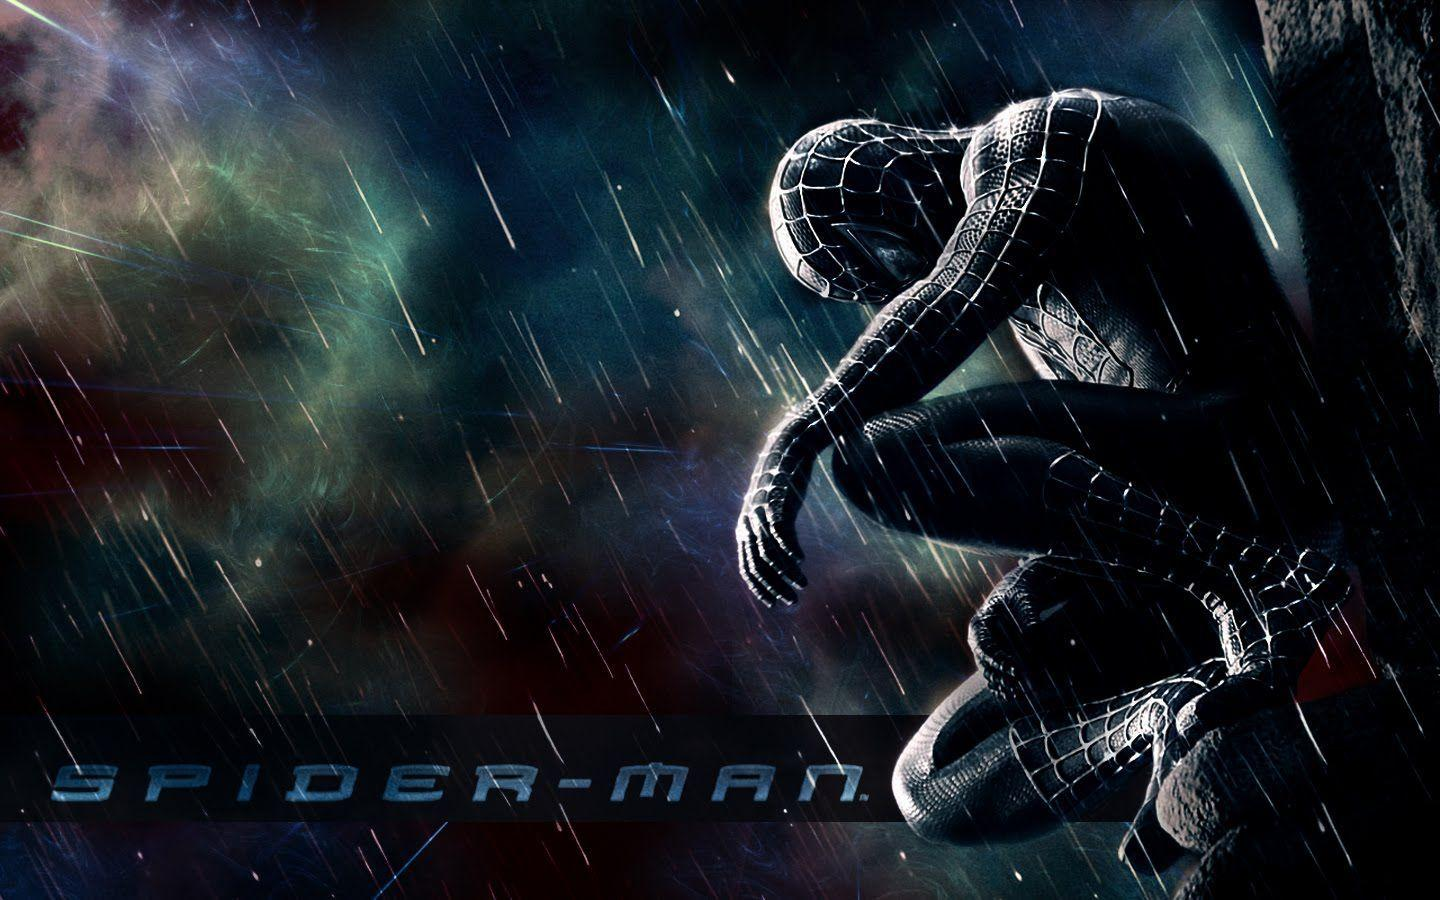 Pictures Of Spiderman Wallpapers - Wallpaper Cave